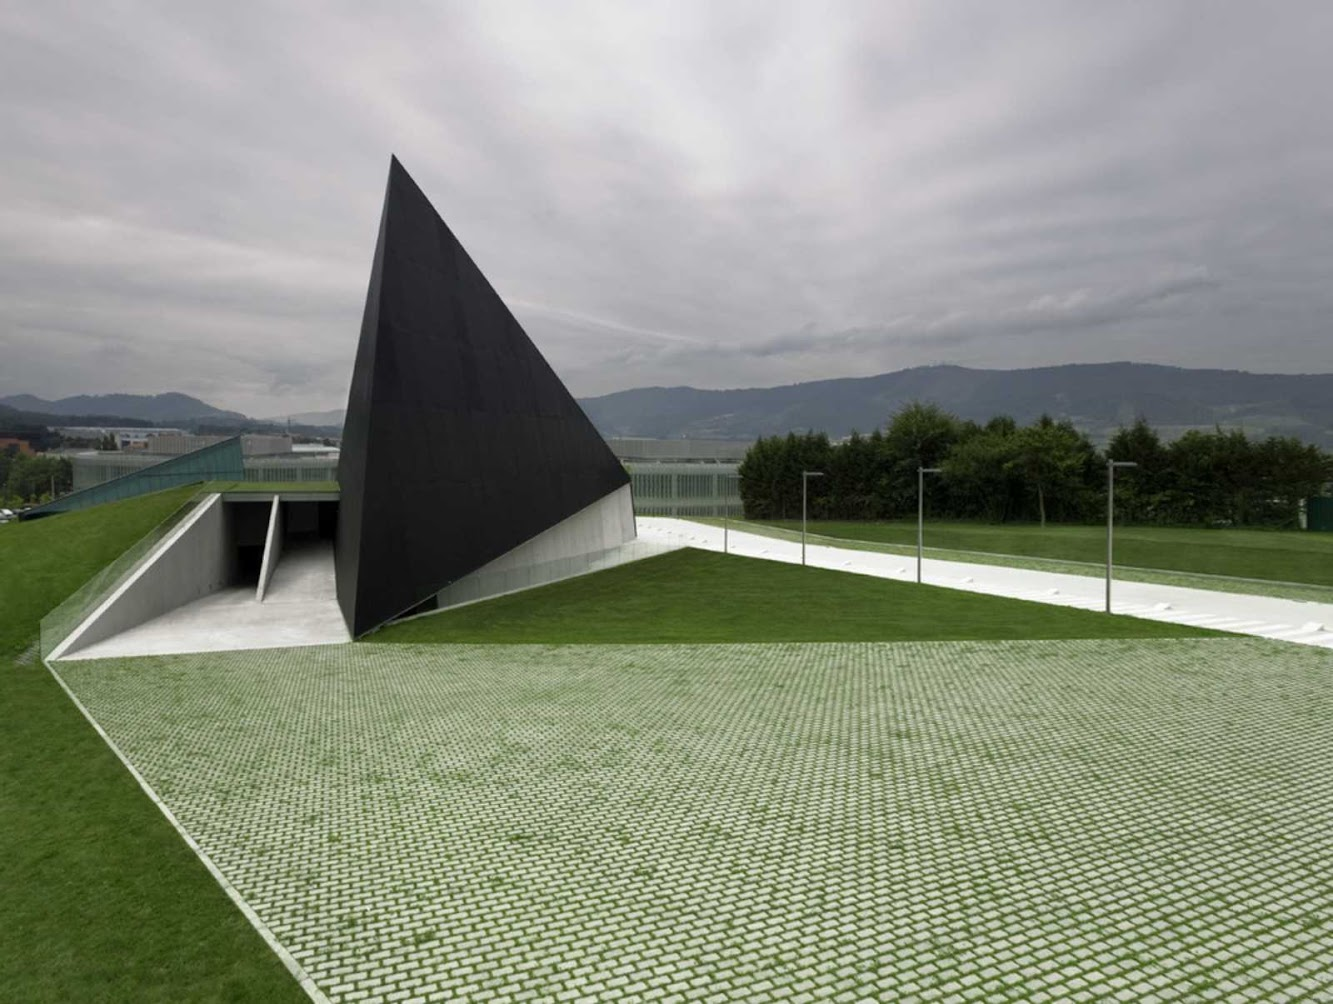 Elexalde Derio, Biscaglia, Spagna: Btek Technology Interpretation Centre by Acxt